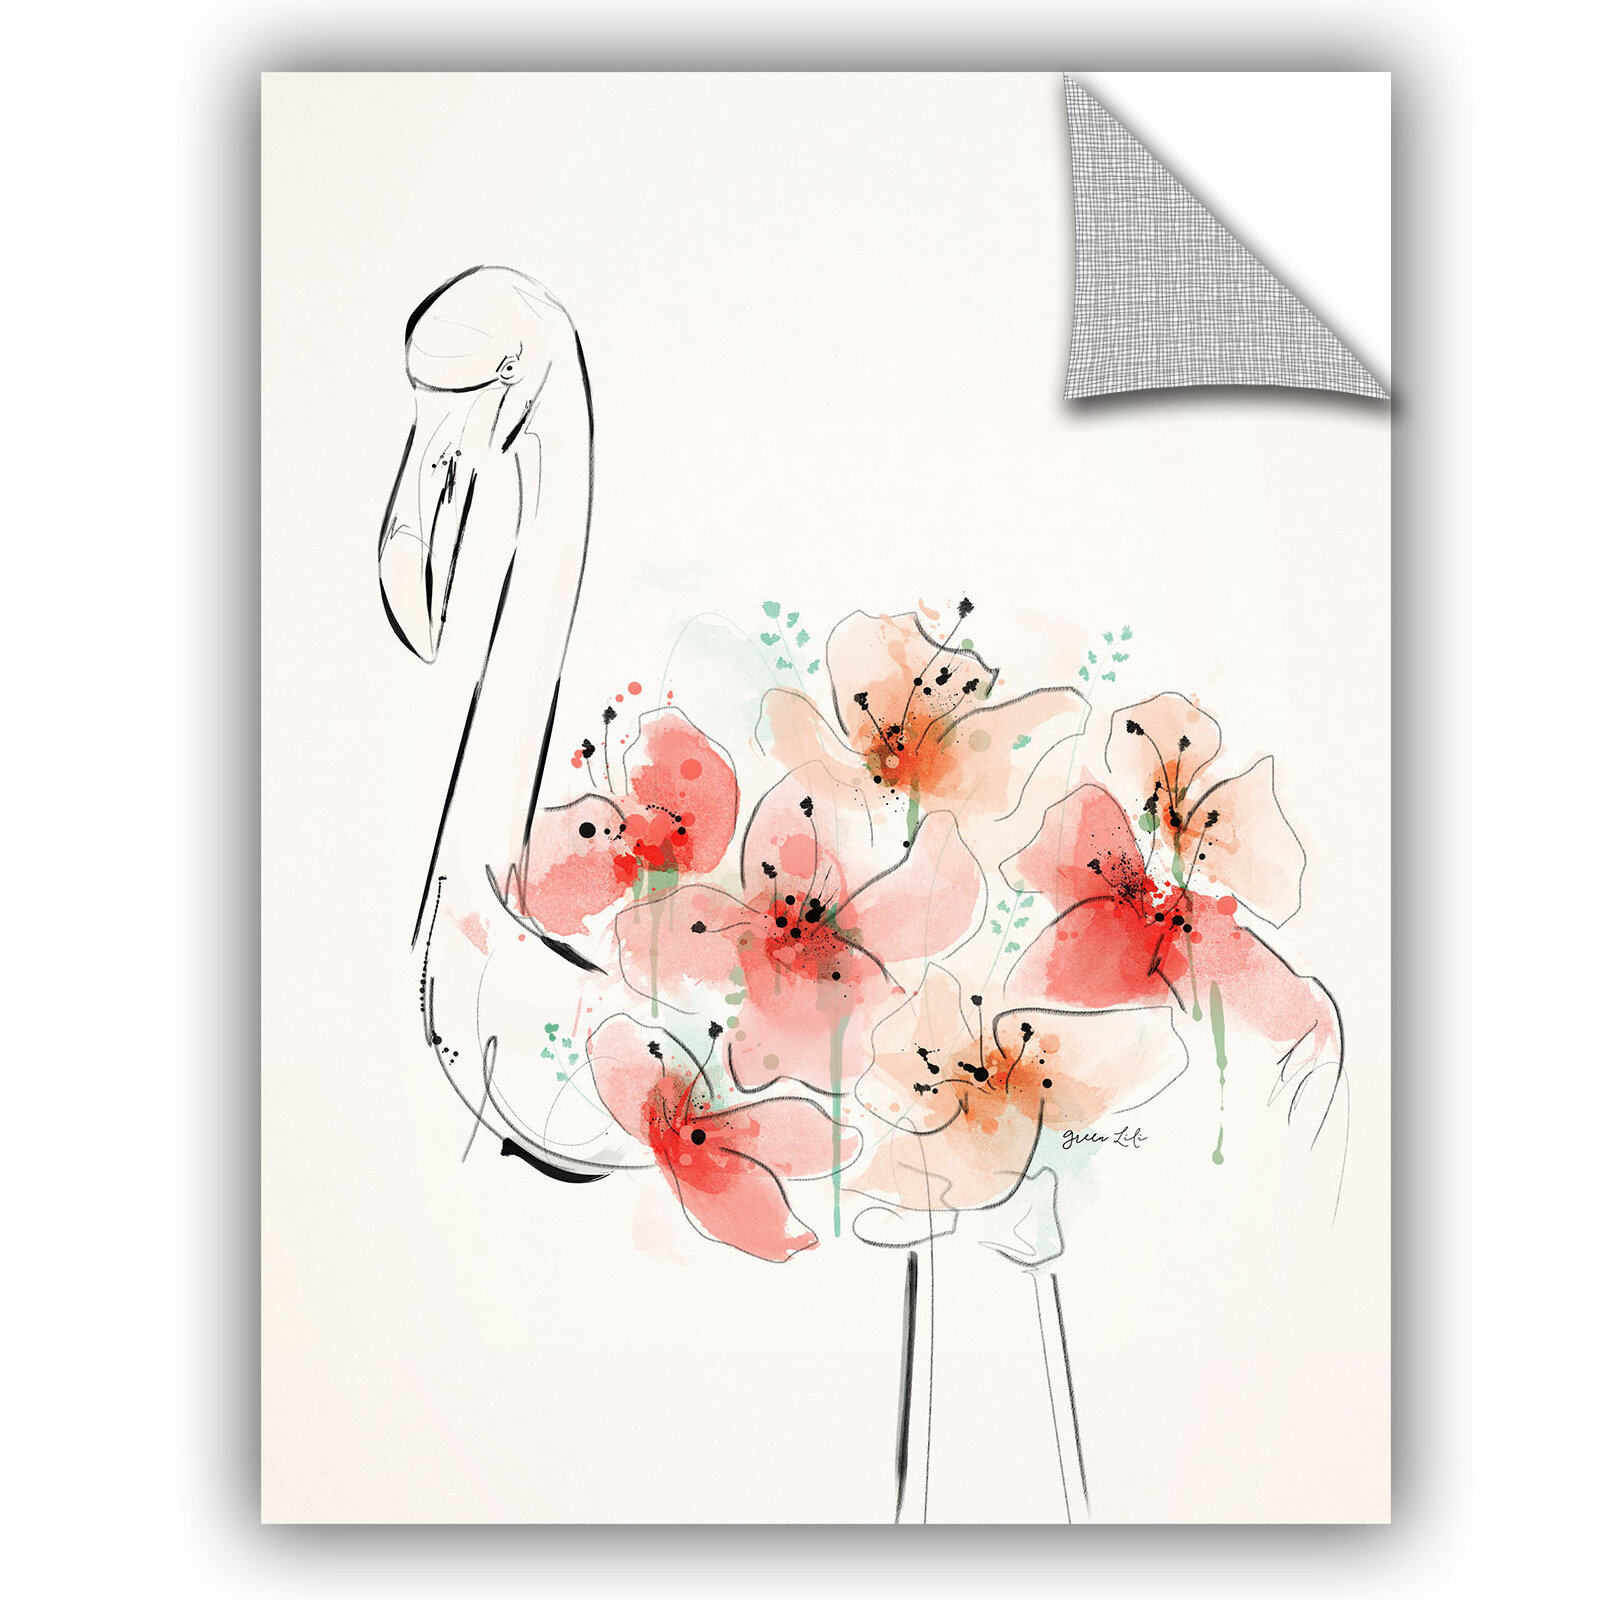 Artwall Green Lili Flamingo Flowers Wall Decal Wayfair